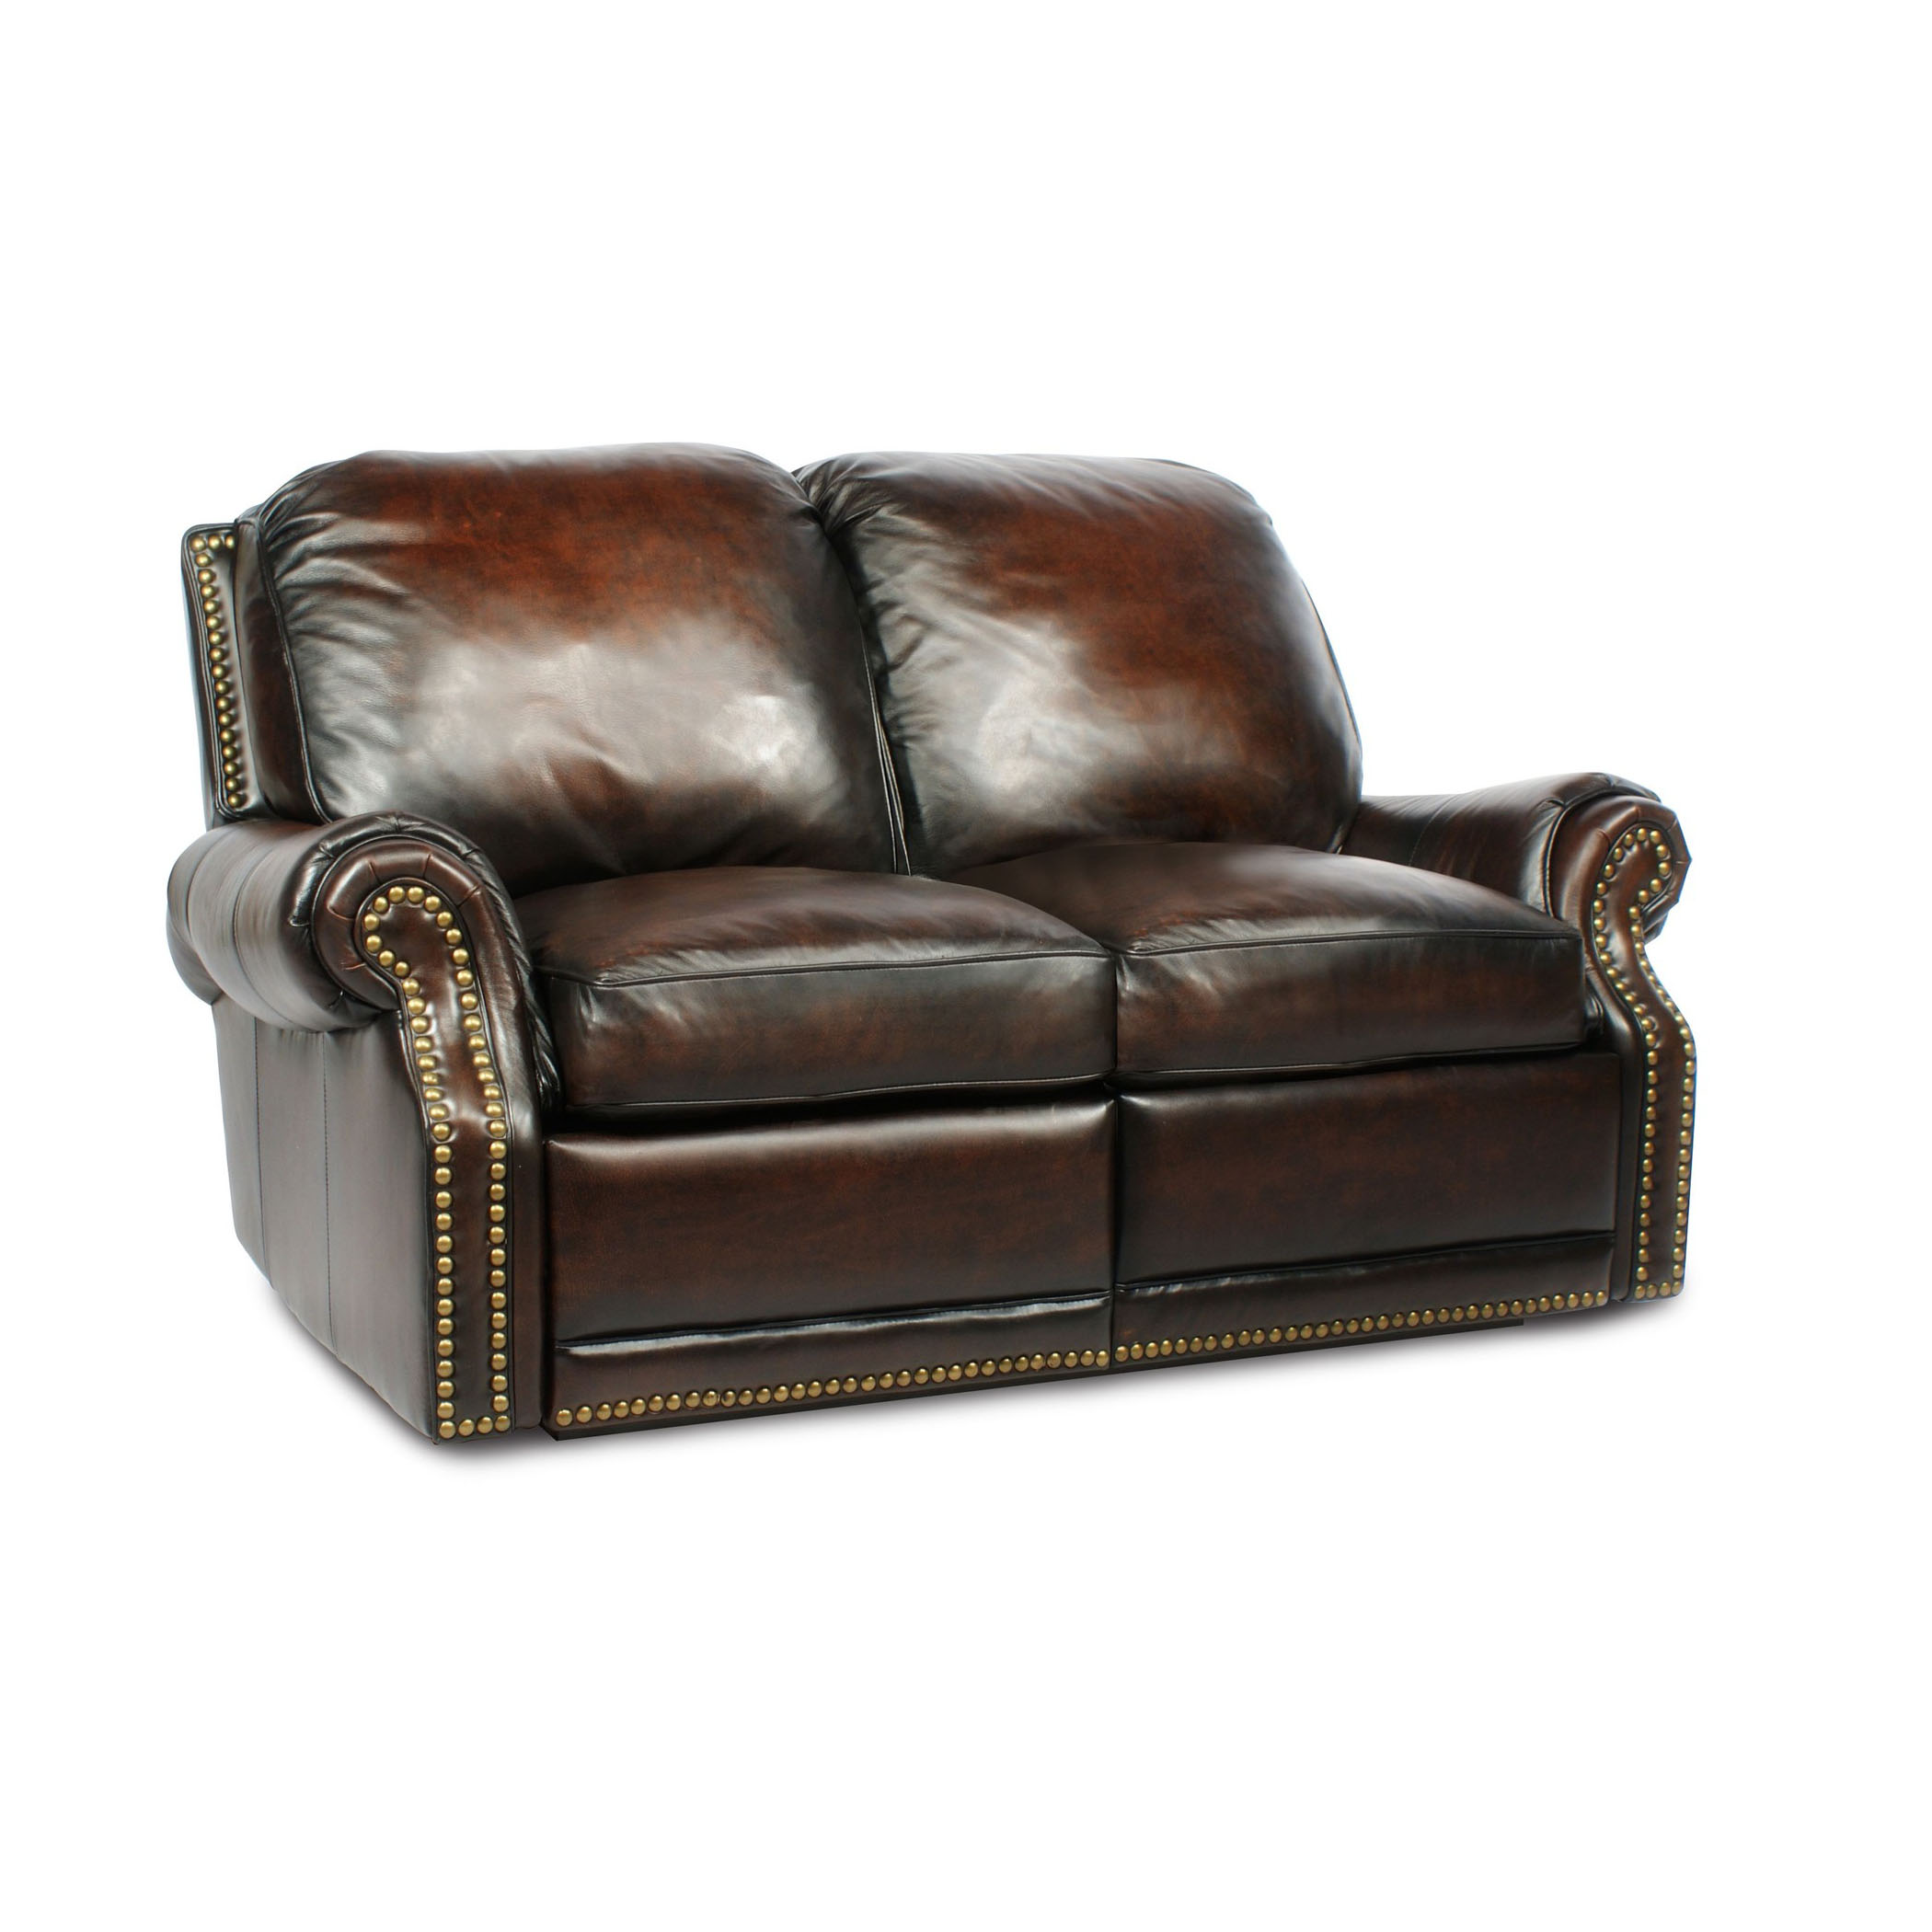 leather 2 seat loveseat sofa leather 2 seat loveseat sofa furniture